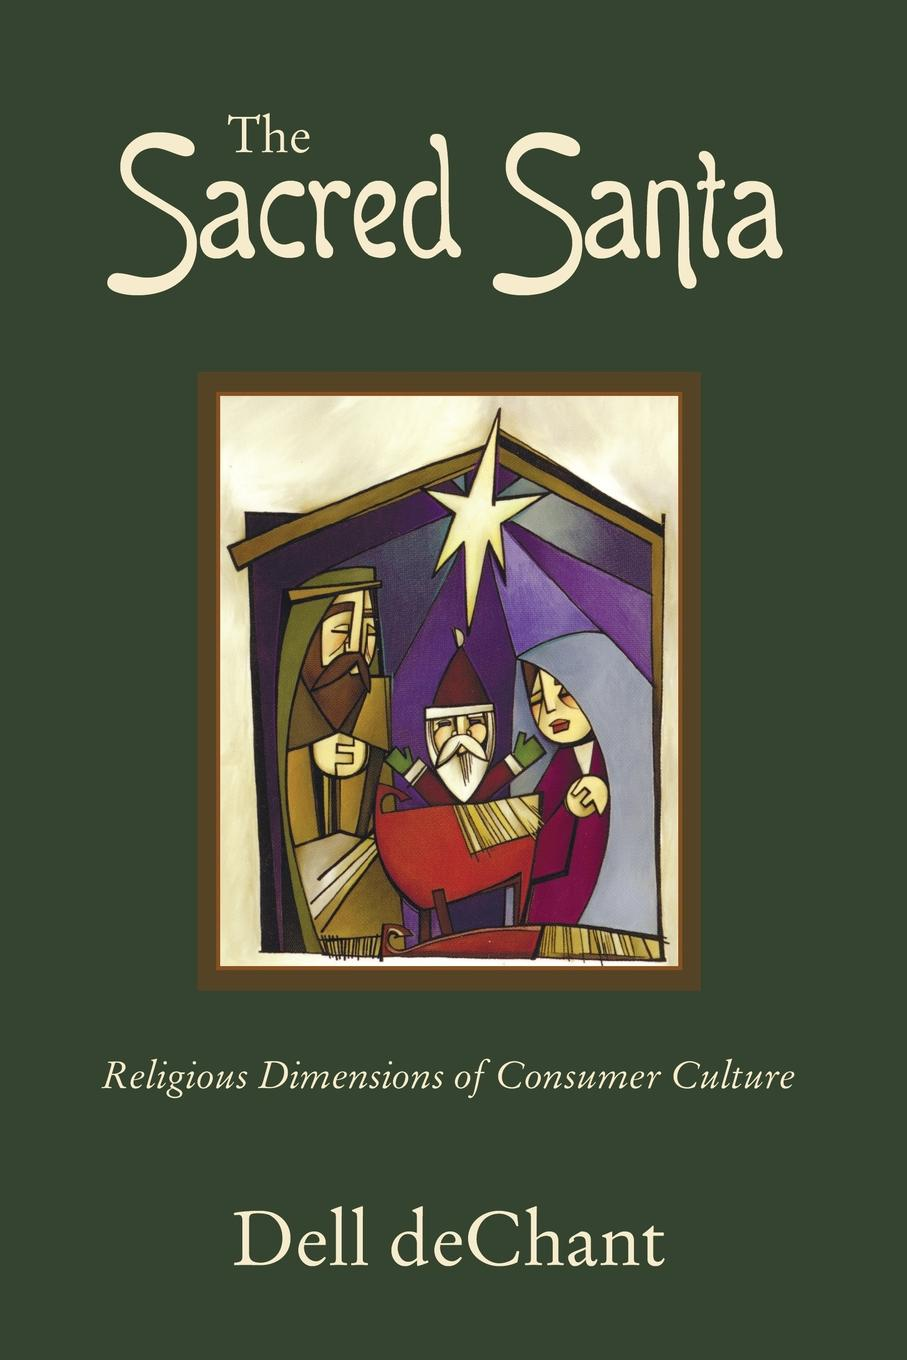 Dell deChant The Sacred Santa. Religious Dimensions of Consumer Culture geek wisdom the sacred teachings of nerd culture